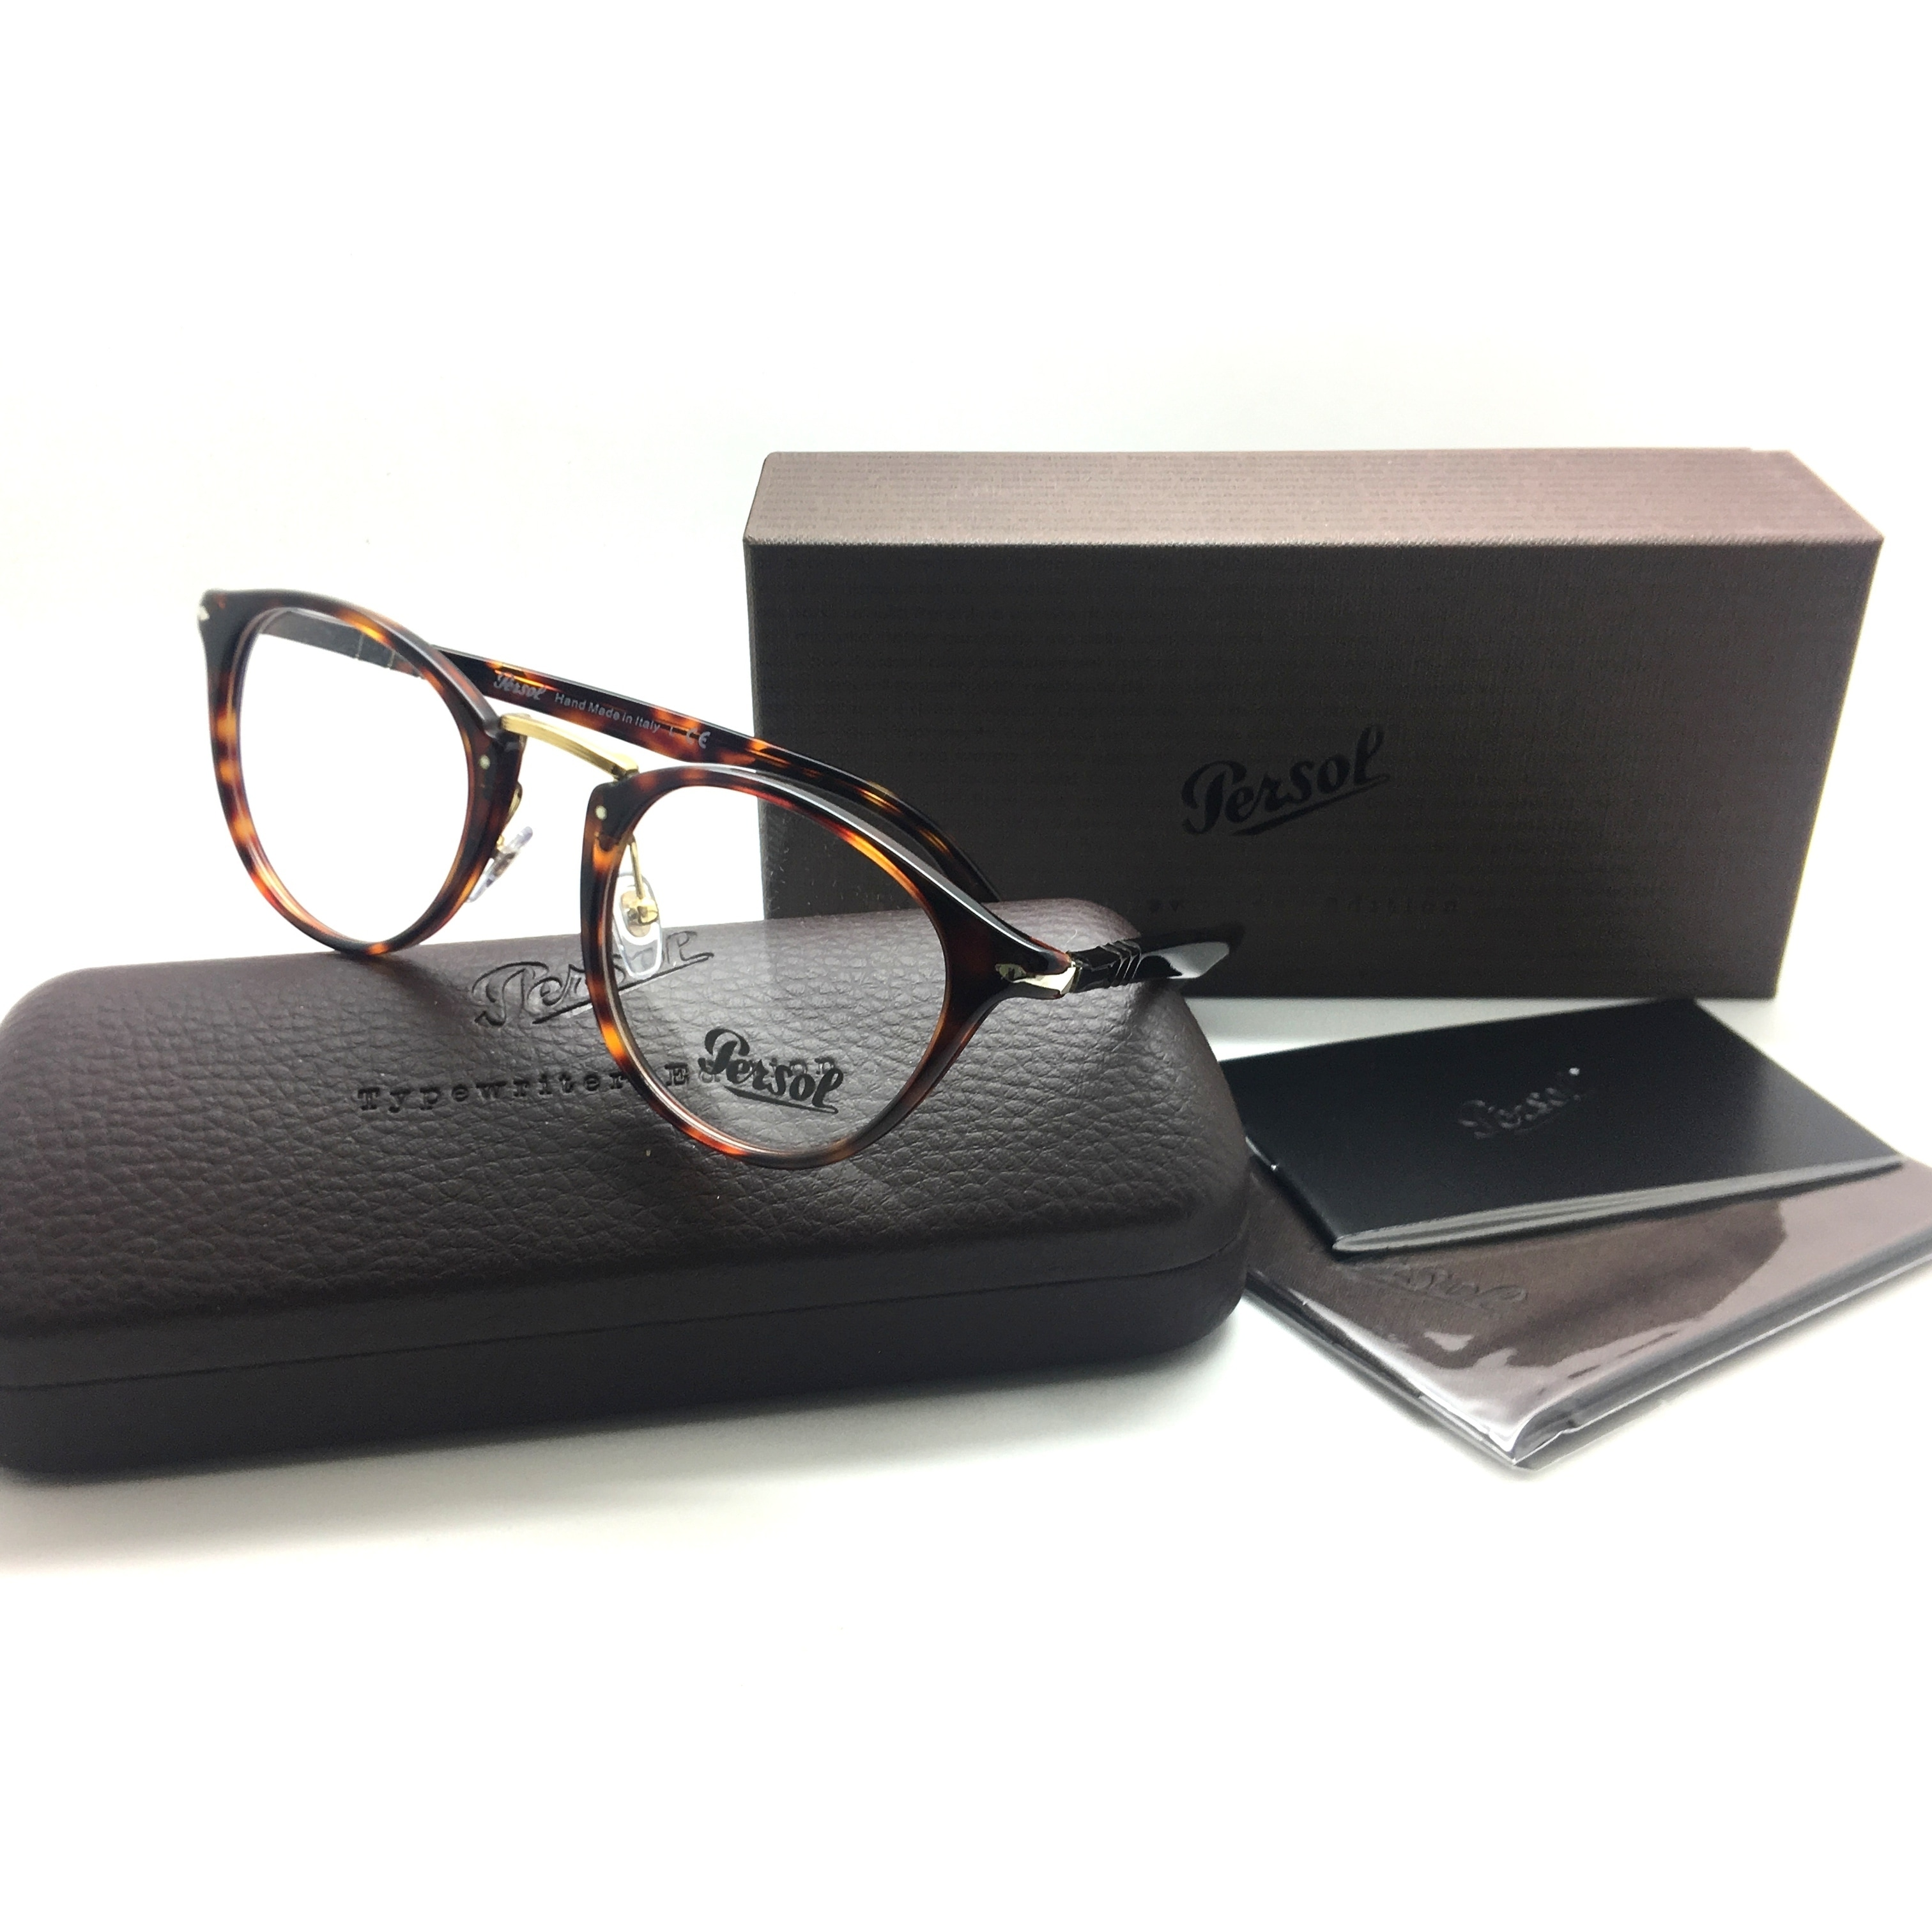 a92114d691a09 Shop PERSOL Rx-able Typewriter Edition Eyeglasses 3107-V 24 47-22 Havana  Tortoise - Free Shipping Today - Overstock - 23059514